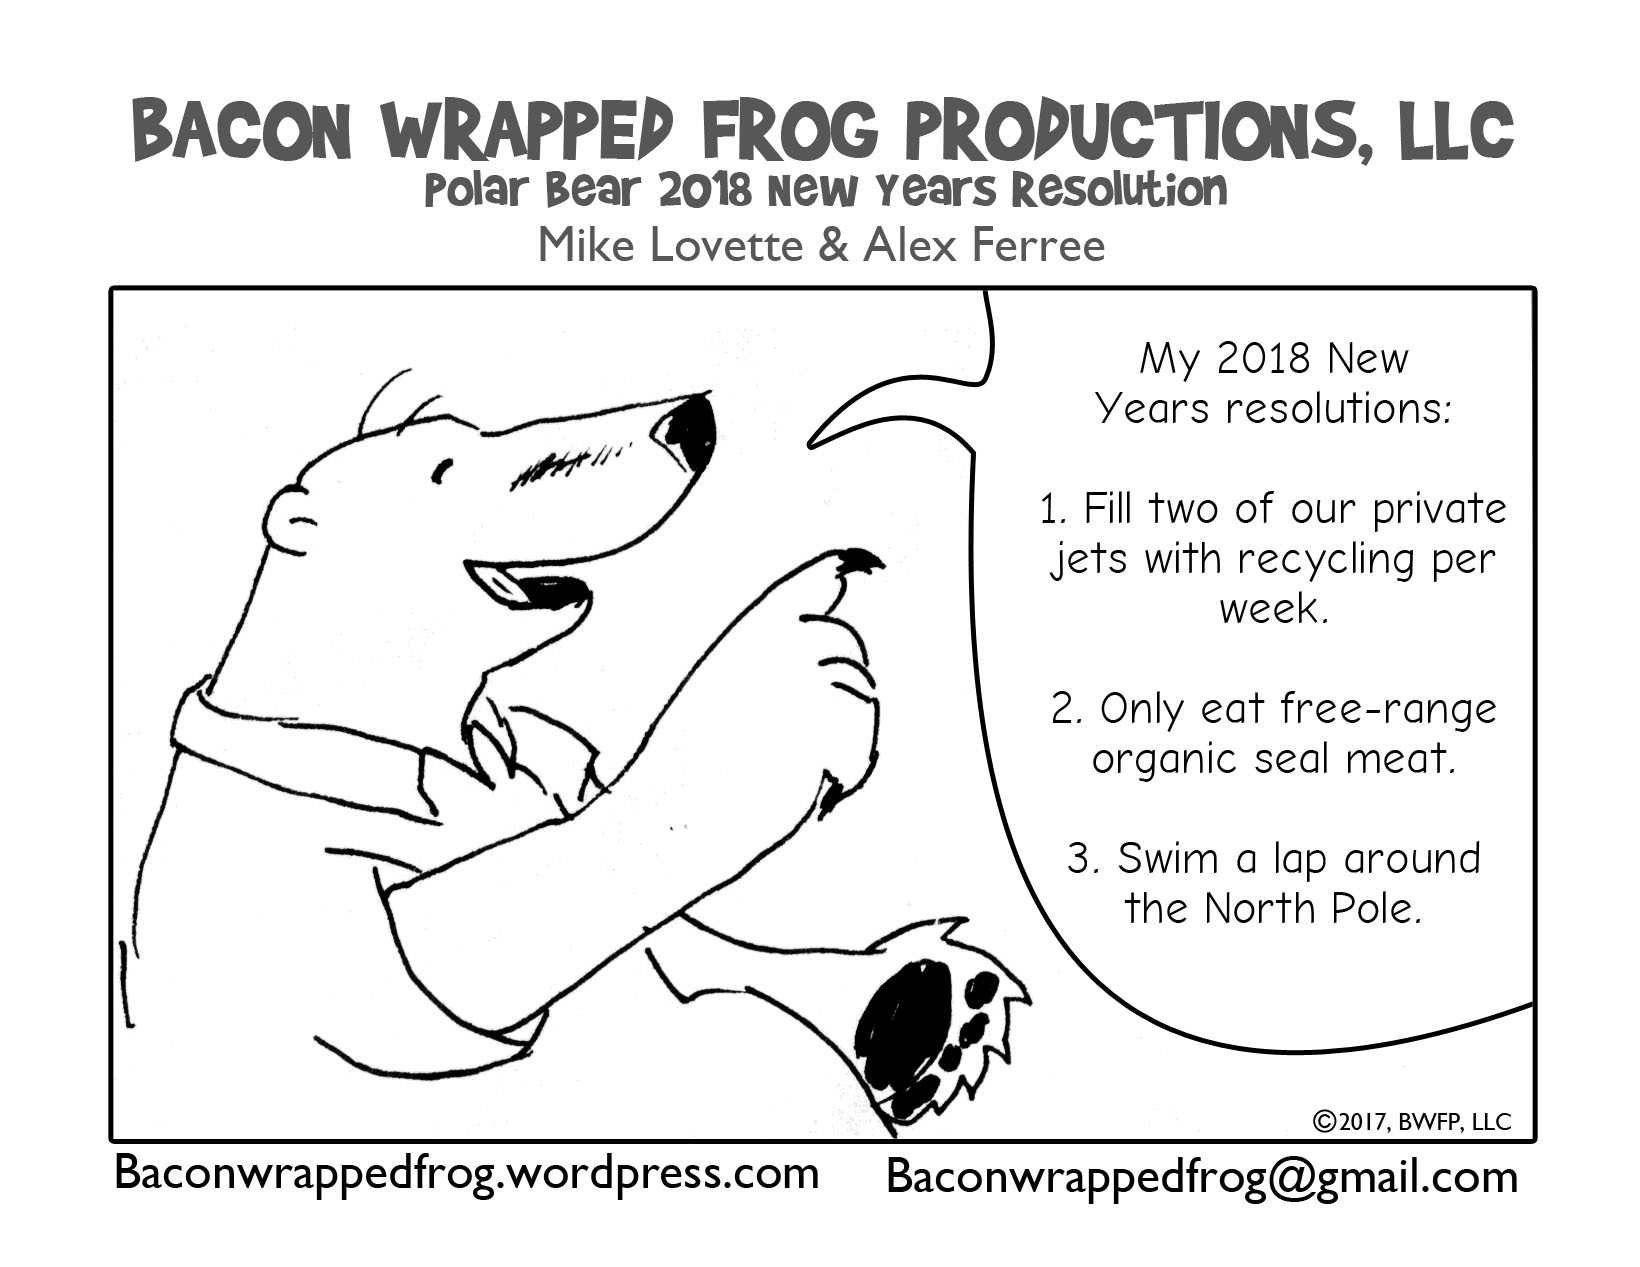 New Years Resolution Bacon Wrapped Frog